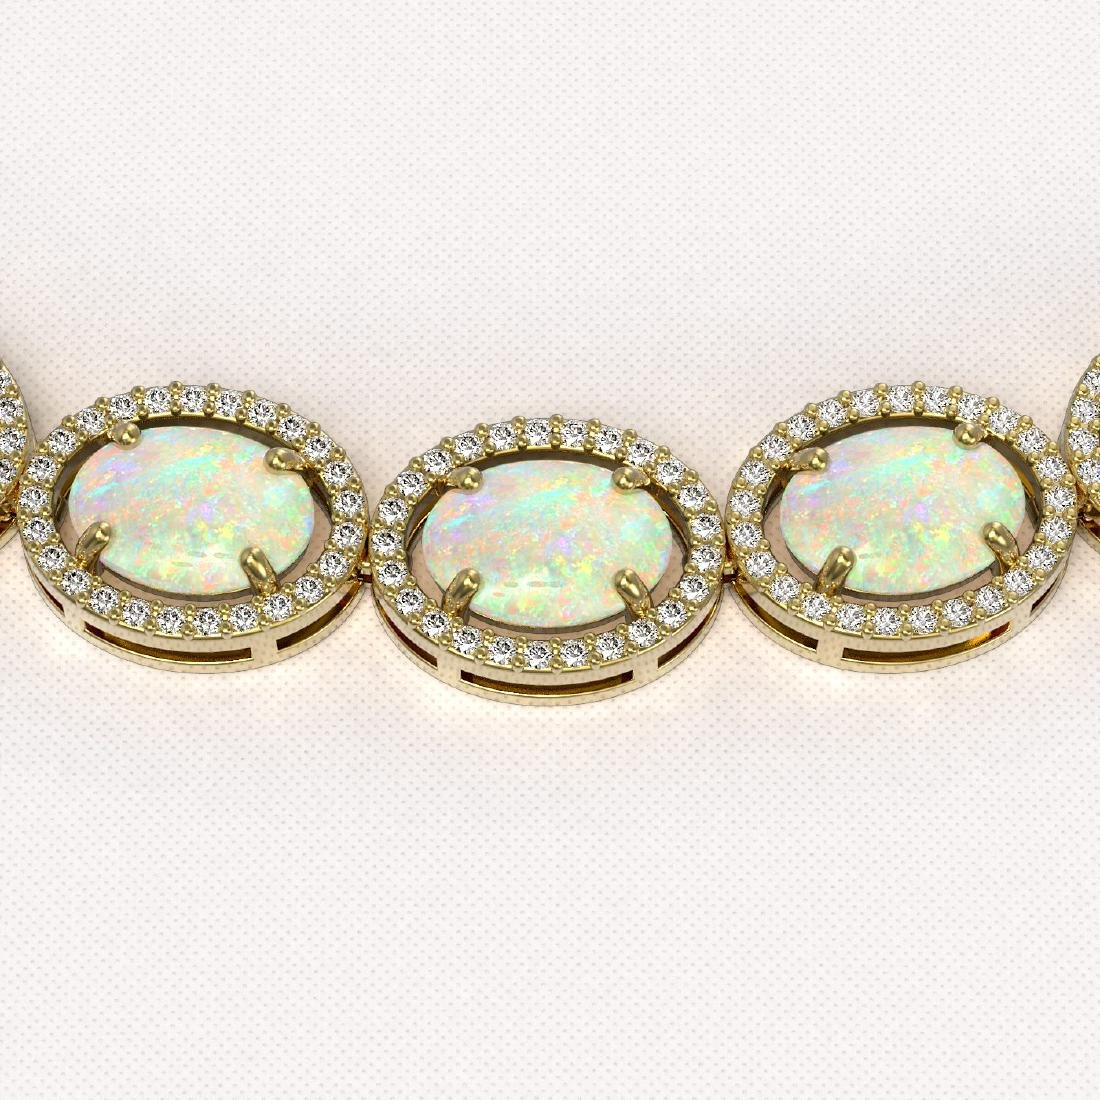 42.29 CTW Opal & Diamond Halo Necklace 10K Yellow Gold - 3